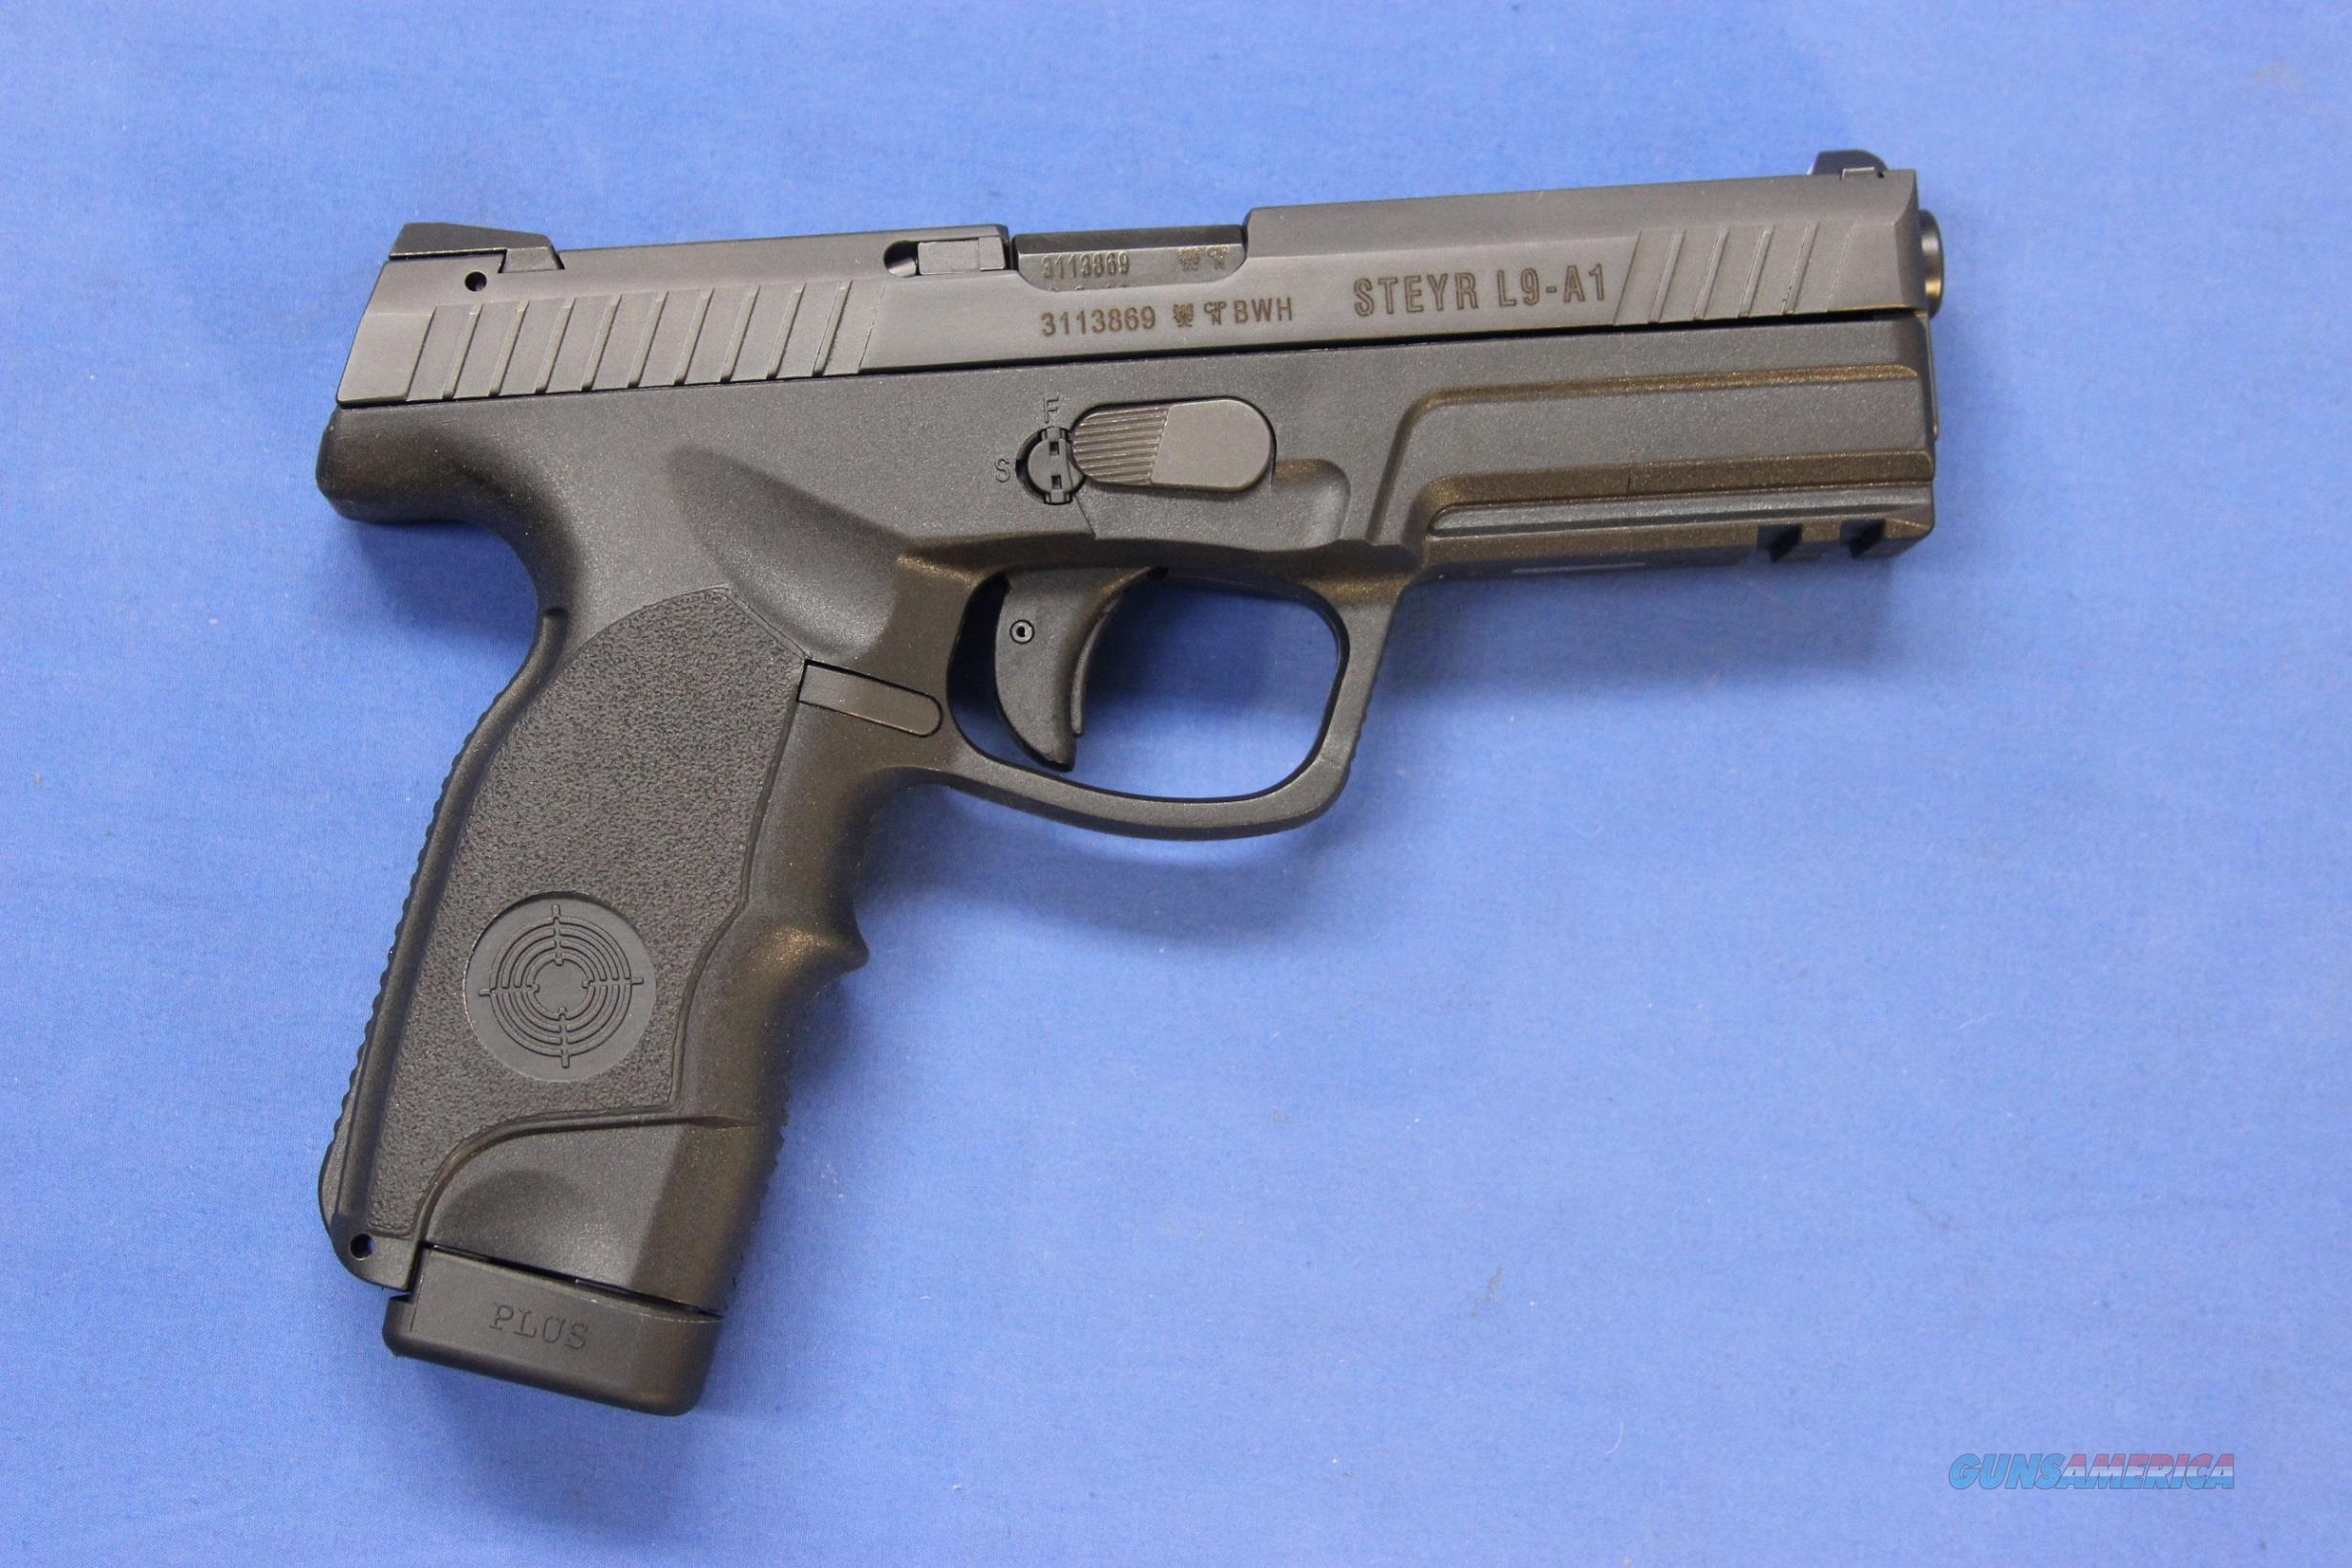 STEYR ARMS L9-A1 PISTOL 9mm - NEW w/BOX & 2 MAGS